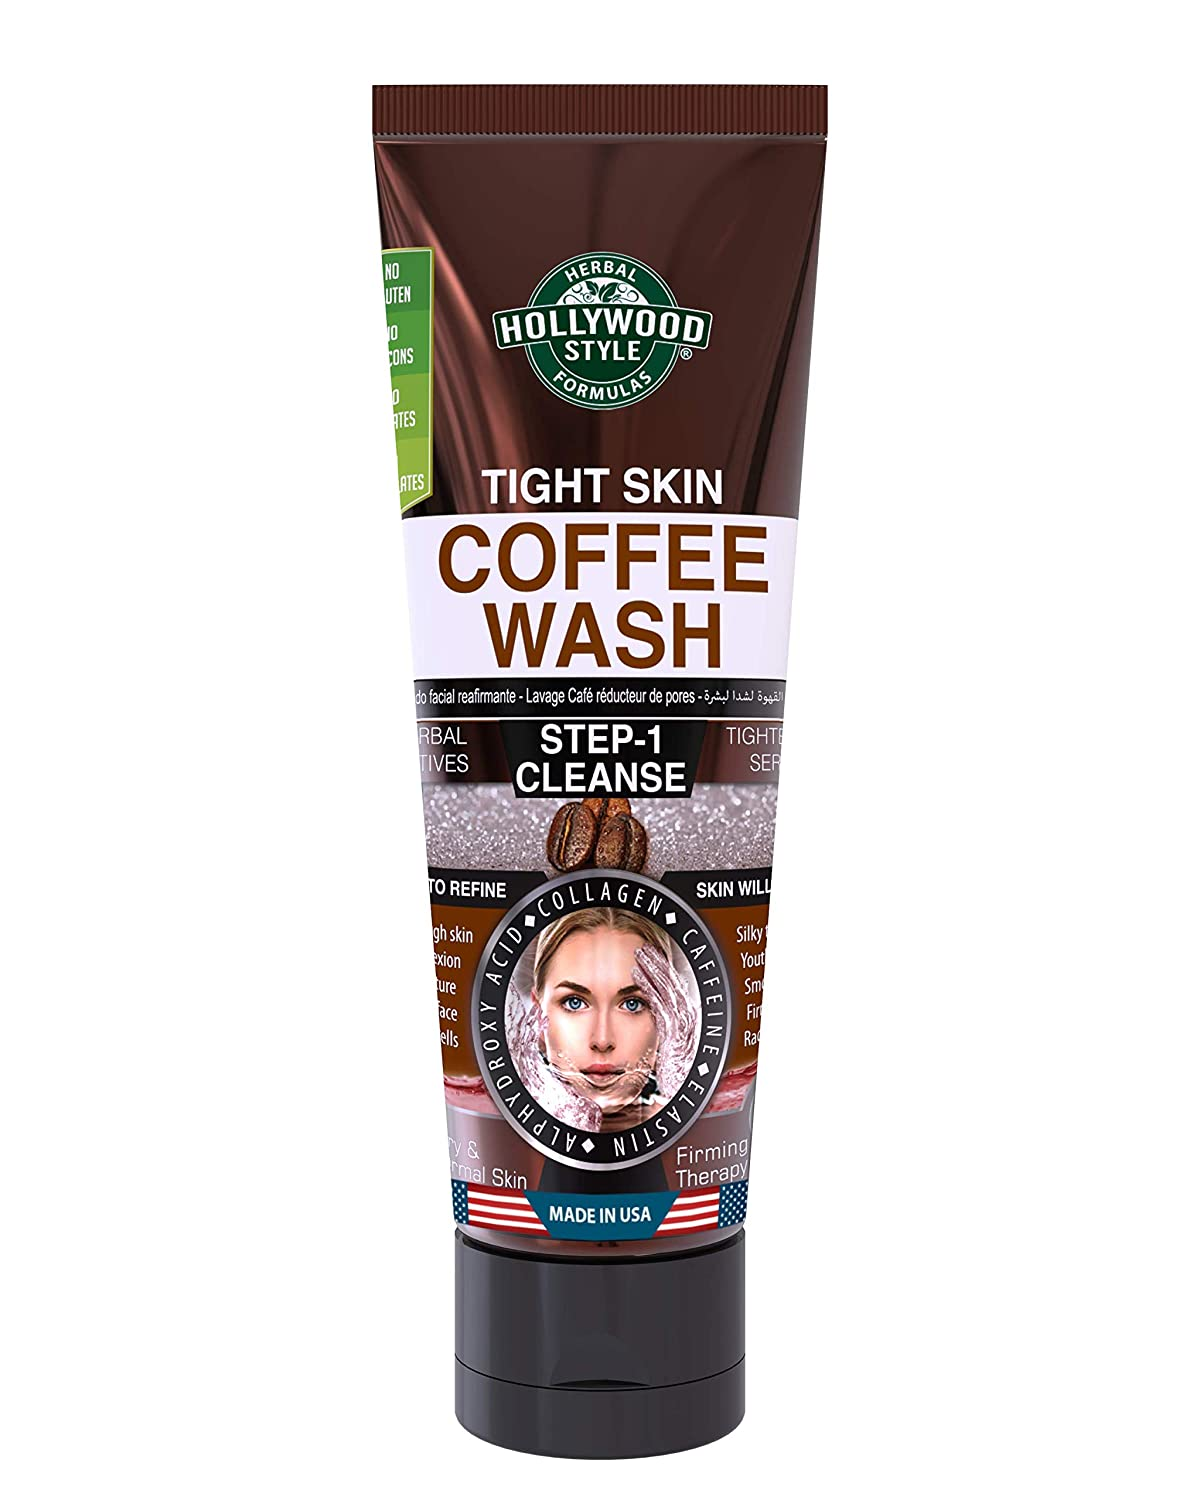 Hollywood Style Tight Skin Exfoliating Coffee Wash Firmer, Softer, and Silkier Skin Removes Dead Skin Cells, 3.2 fl. Oz.